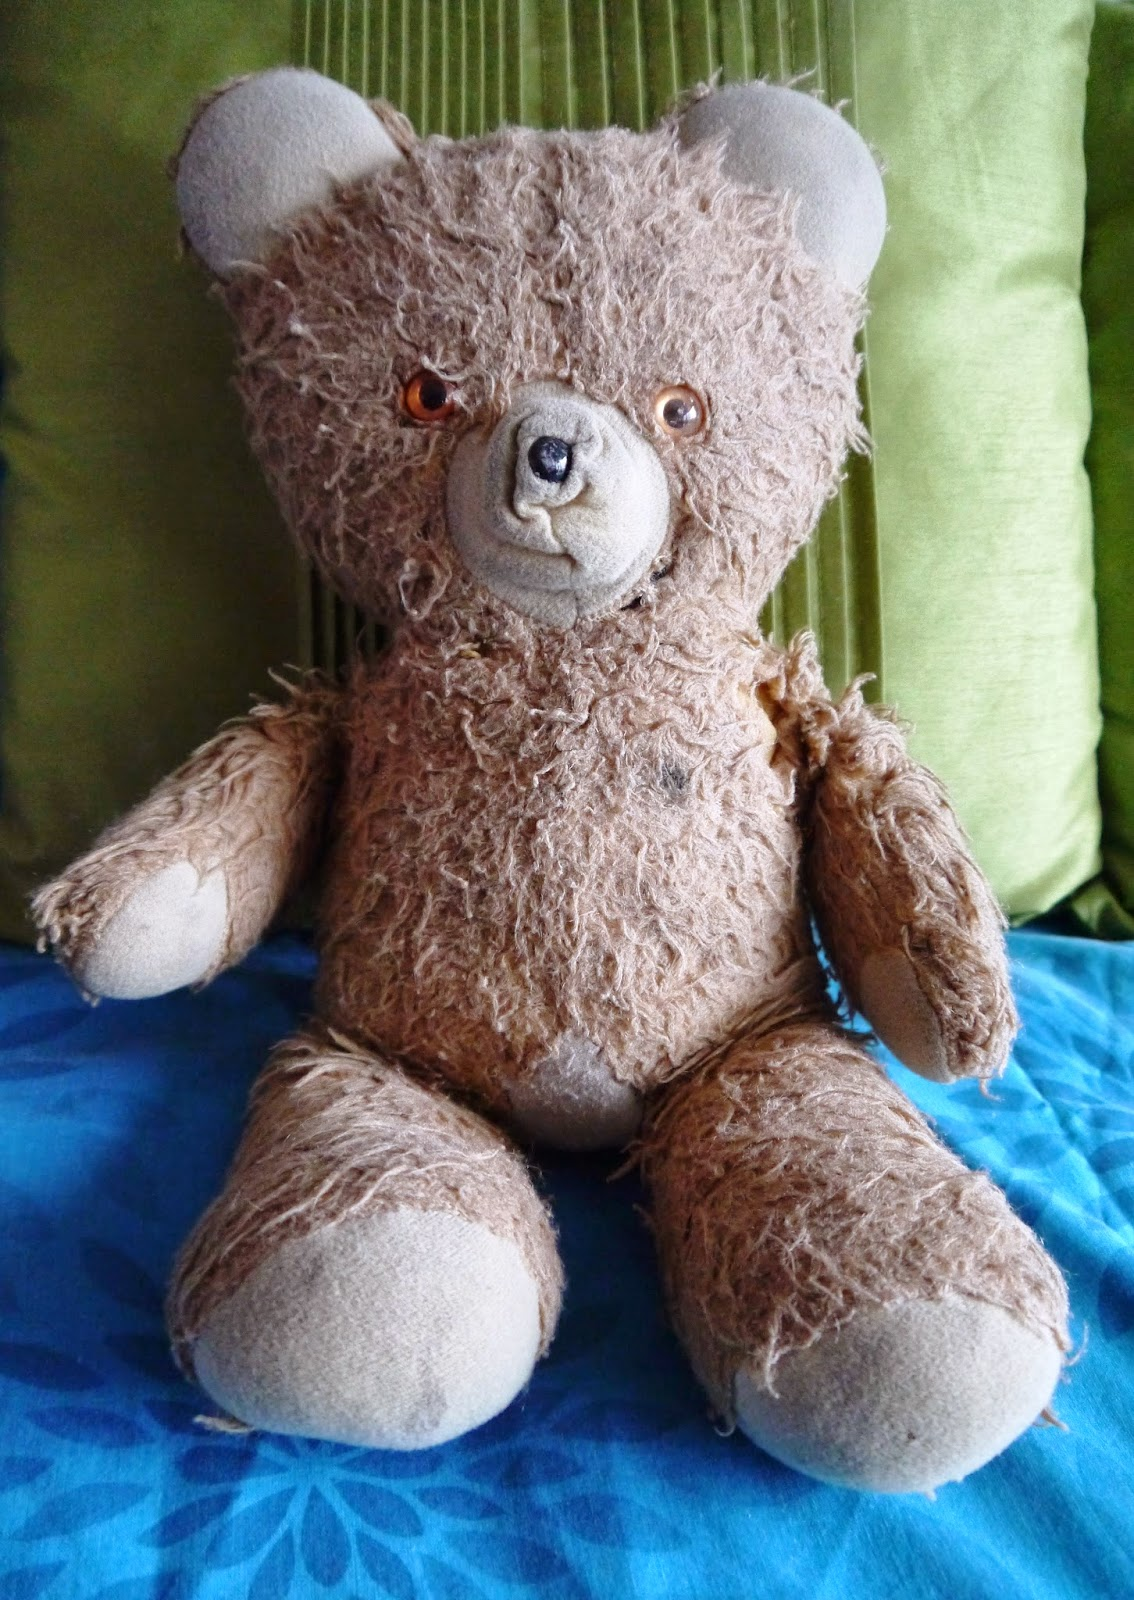 Brown Ted the teddy bear